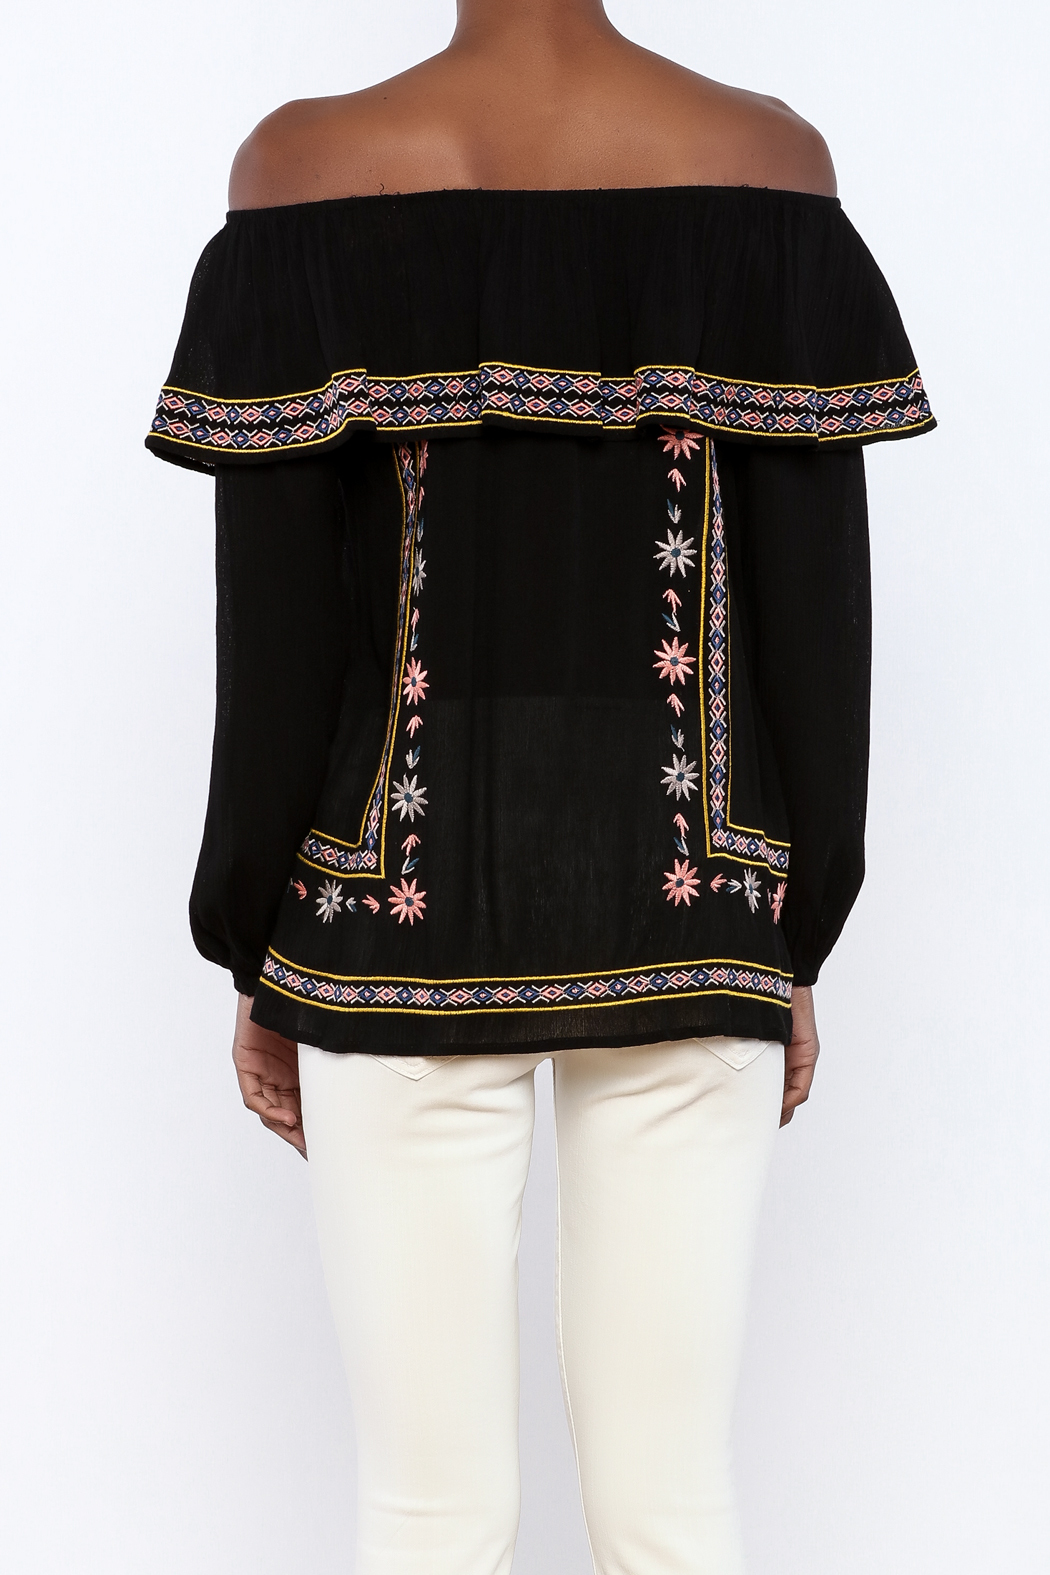 THML Clothing Black Embroidered Blouse - Back Cropped Image